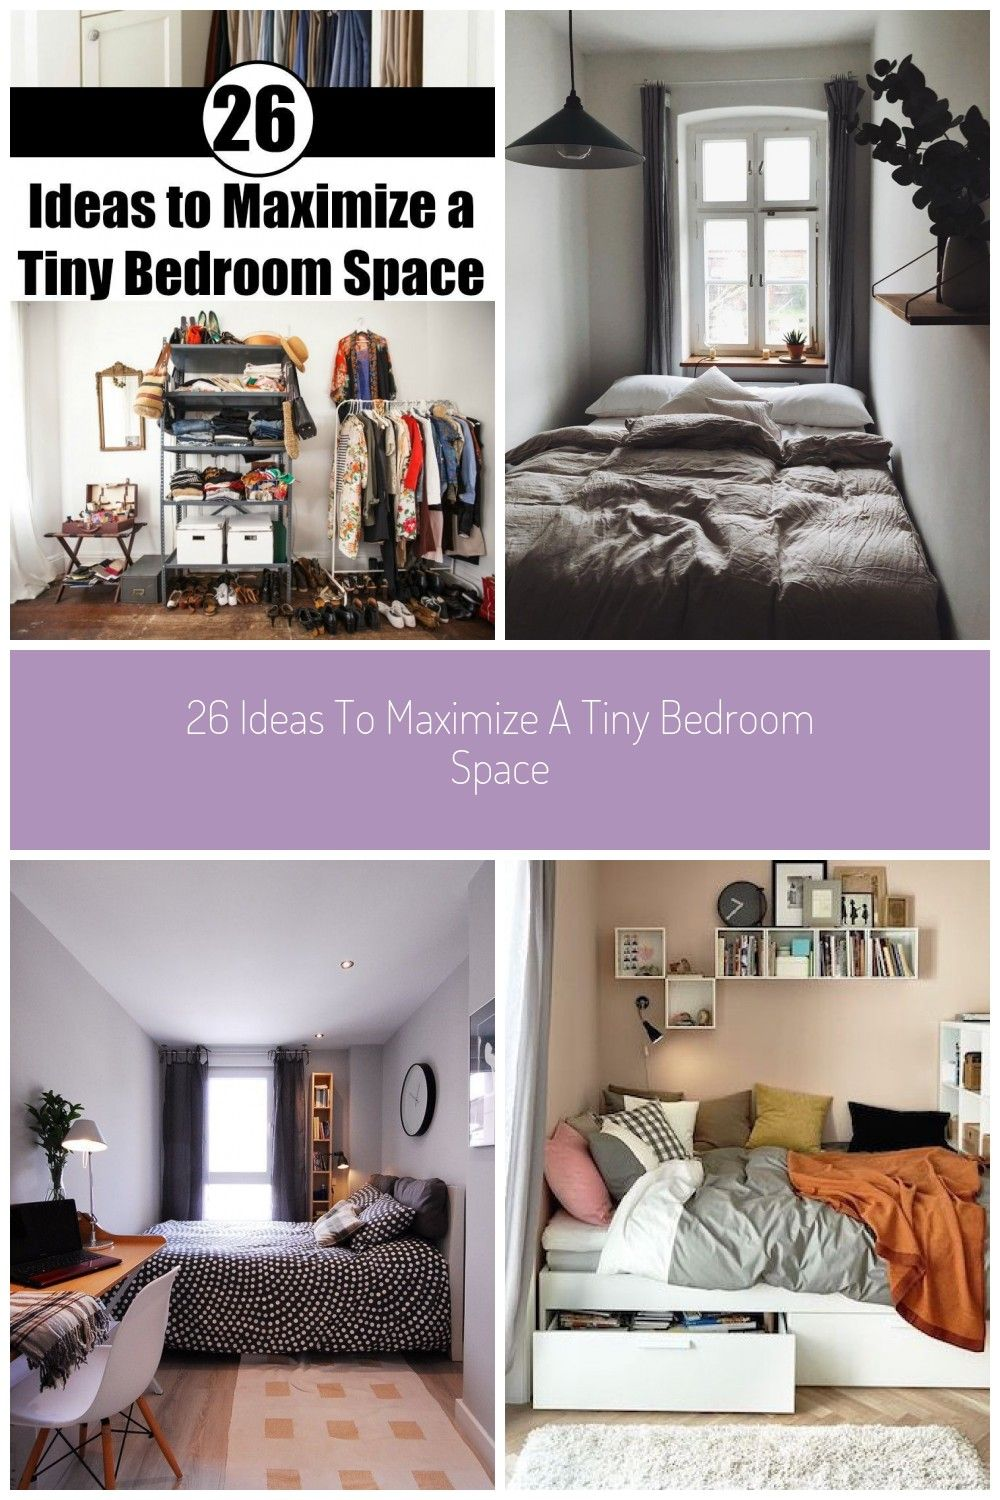 9 Ideas to Maximize a Tiny Bedroom Space #tiny bedroom 9 Ideas